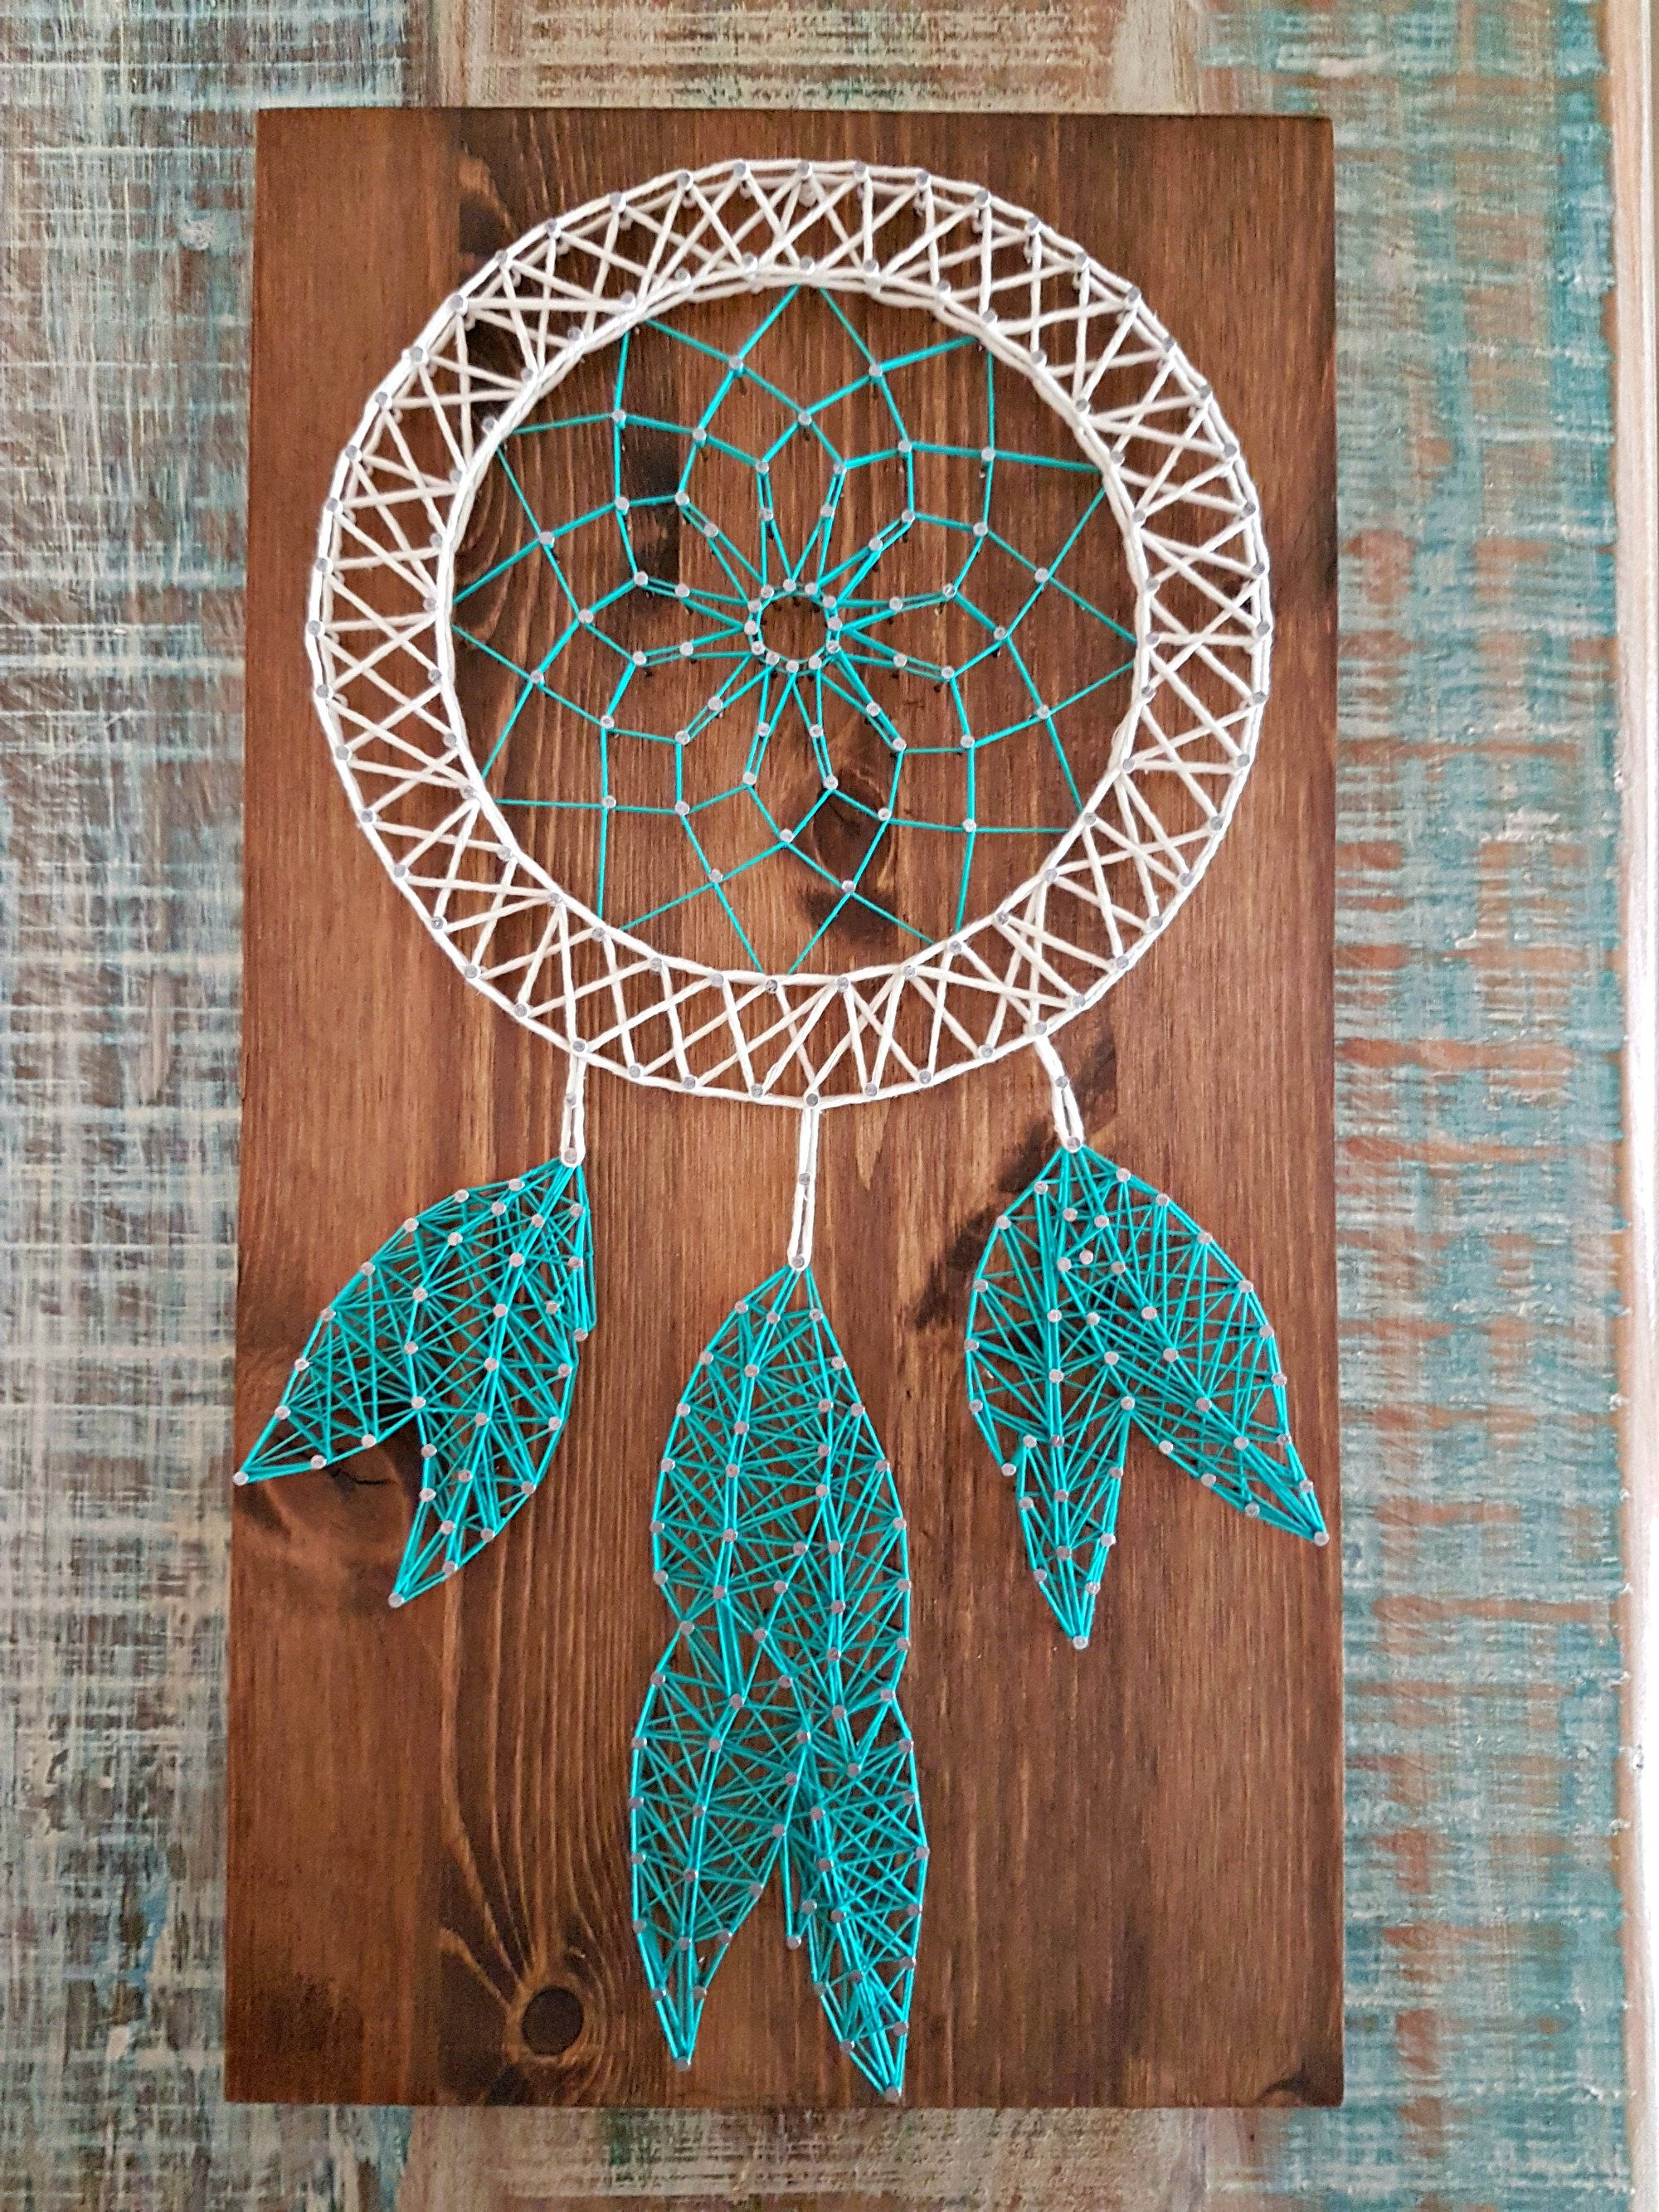 10 Sensational String Art Projects | String art, Modern and Craft